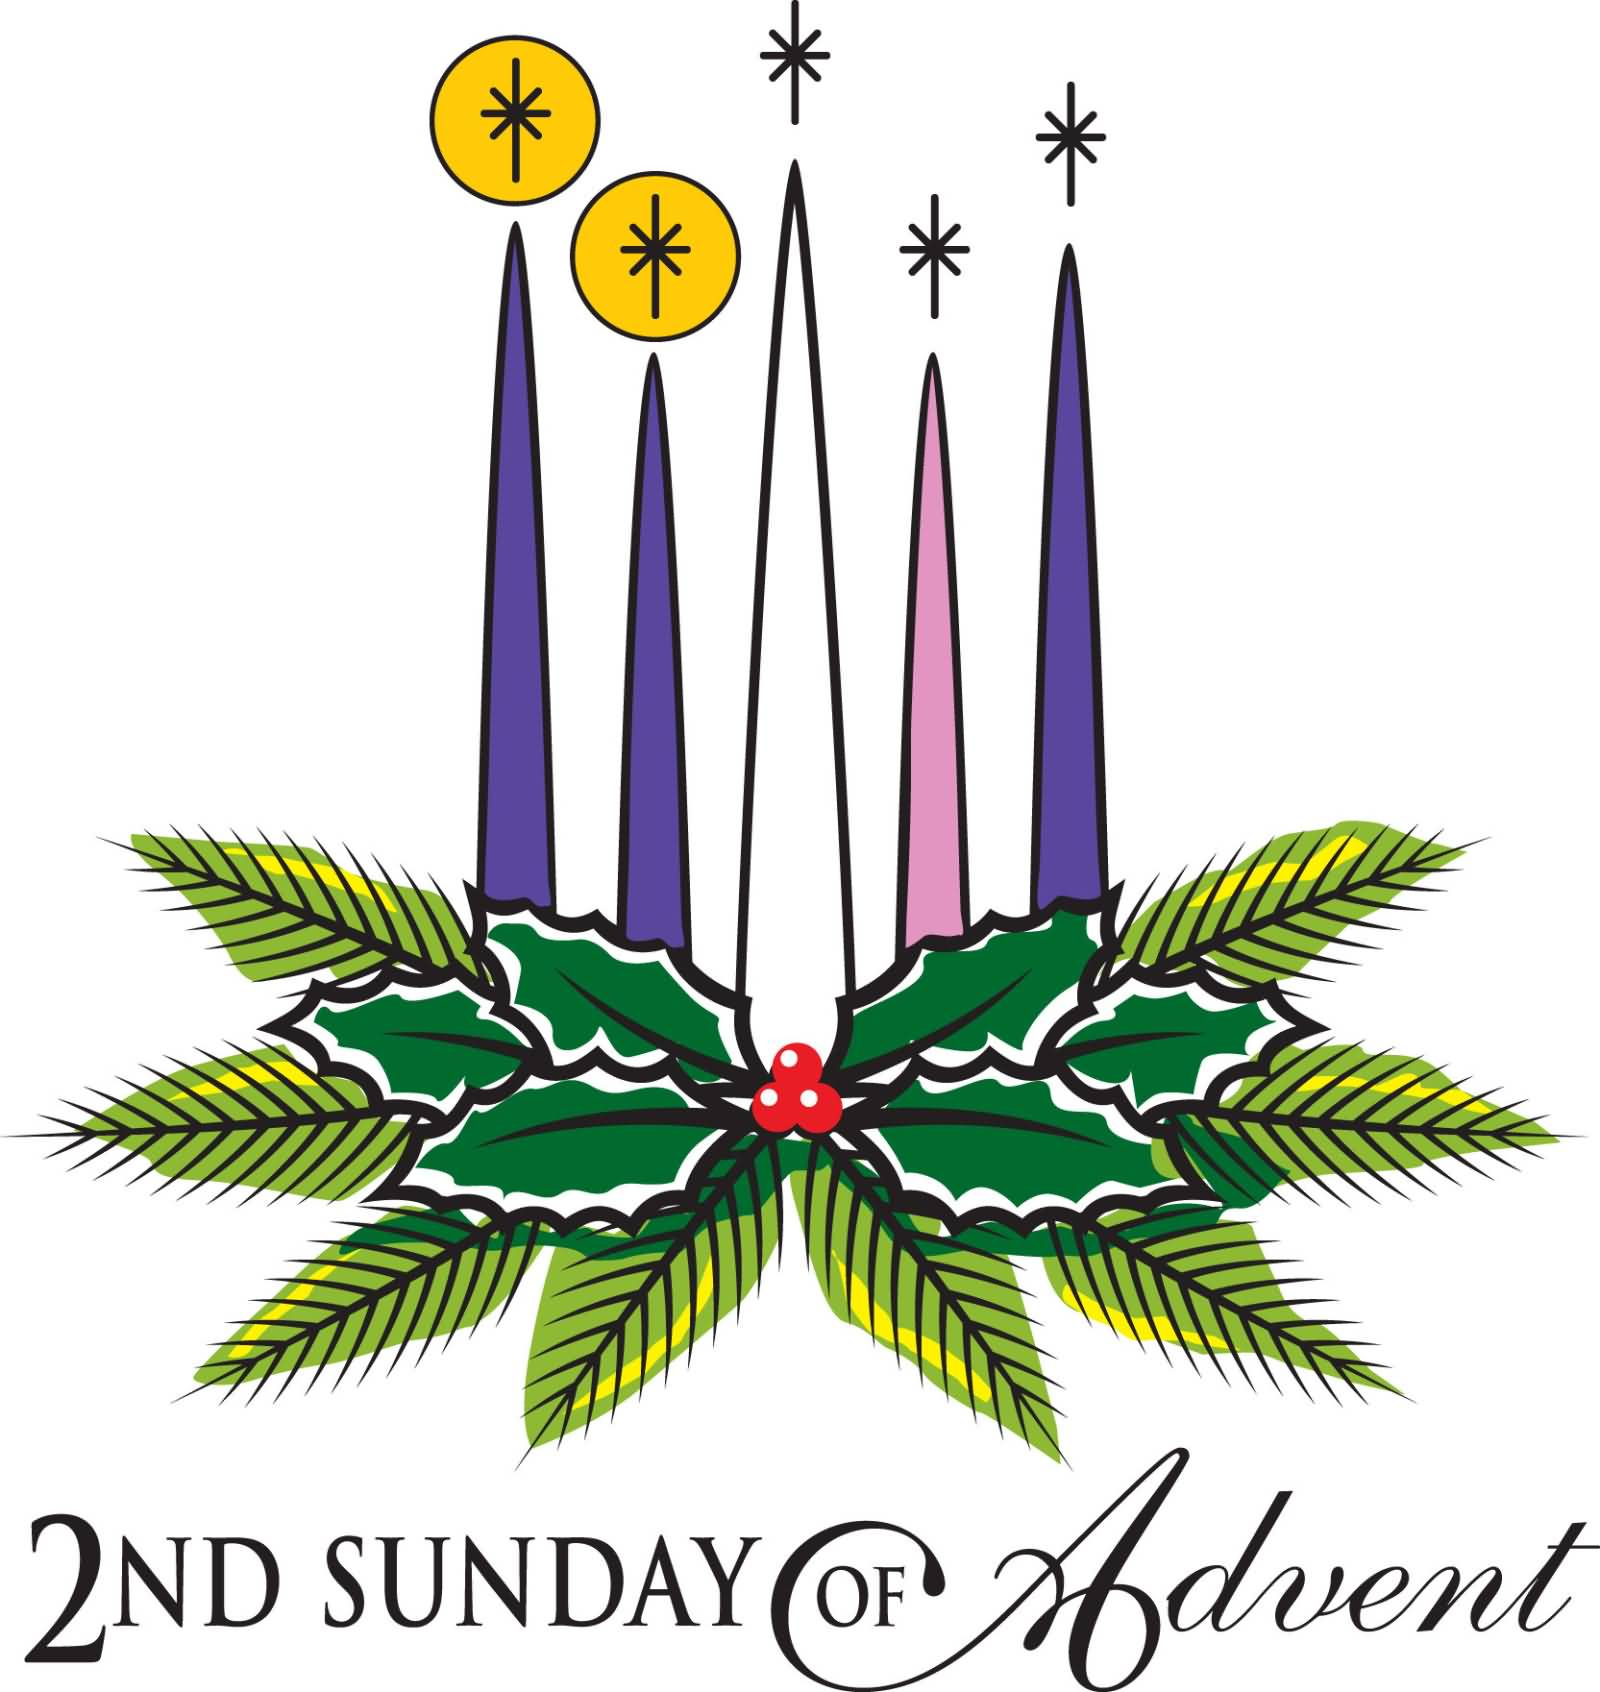 hight resolution of second sunday of advent wreath clipart